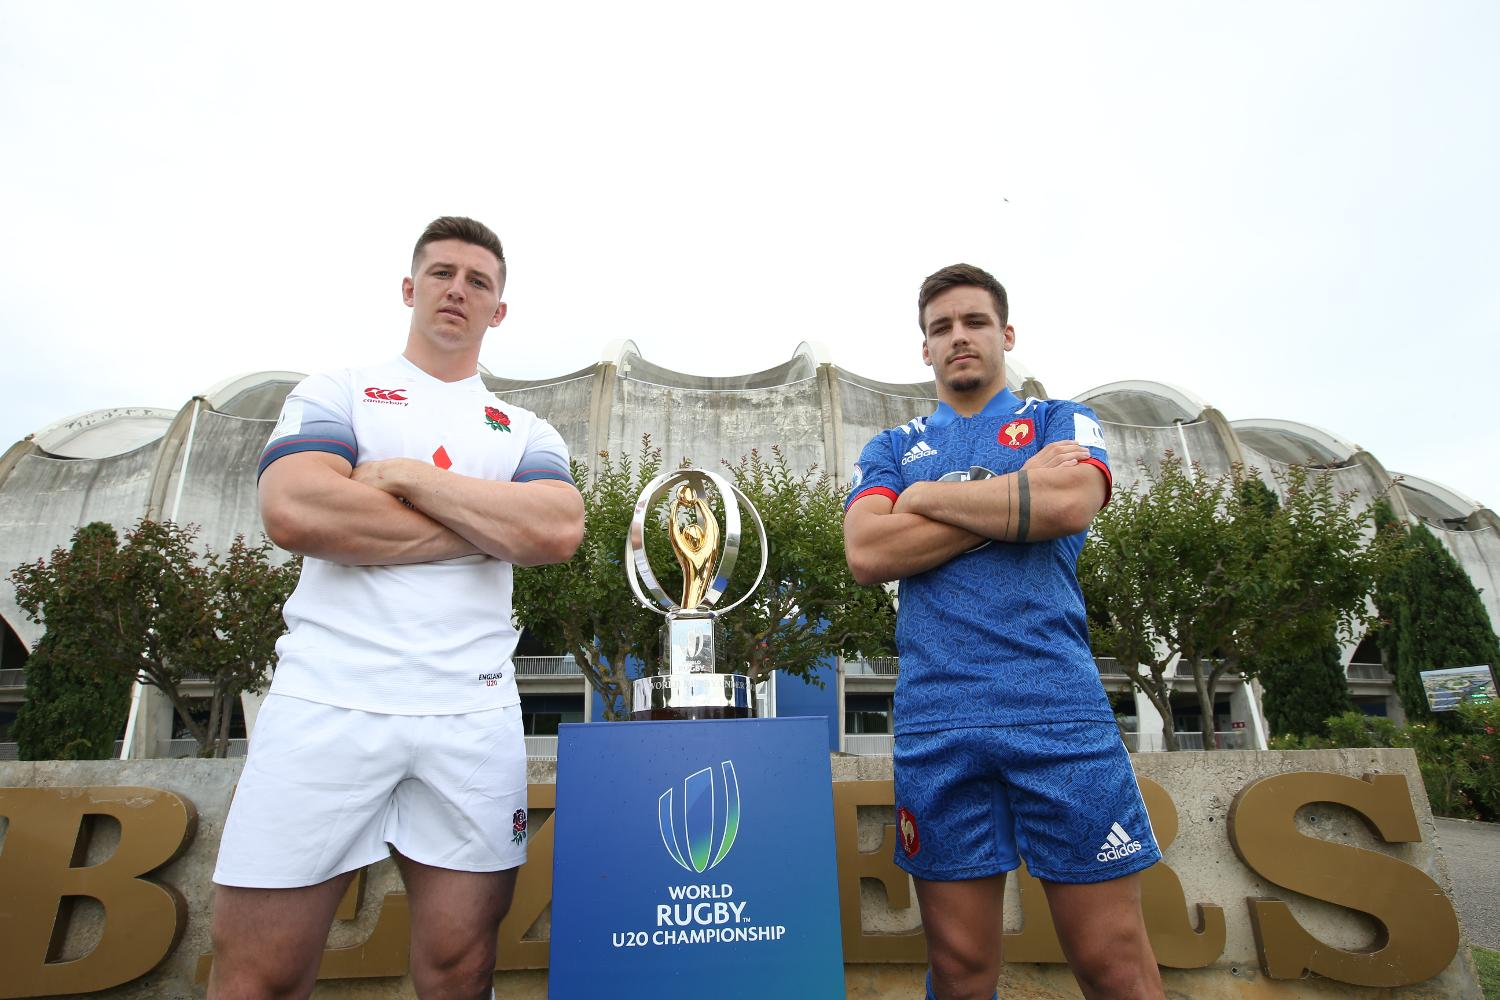 World Rugby U20 Championship 2018 - Final - captains' photocall